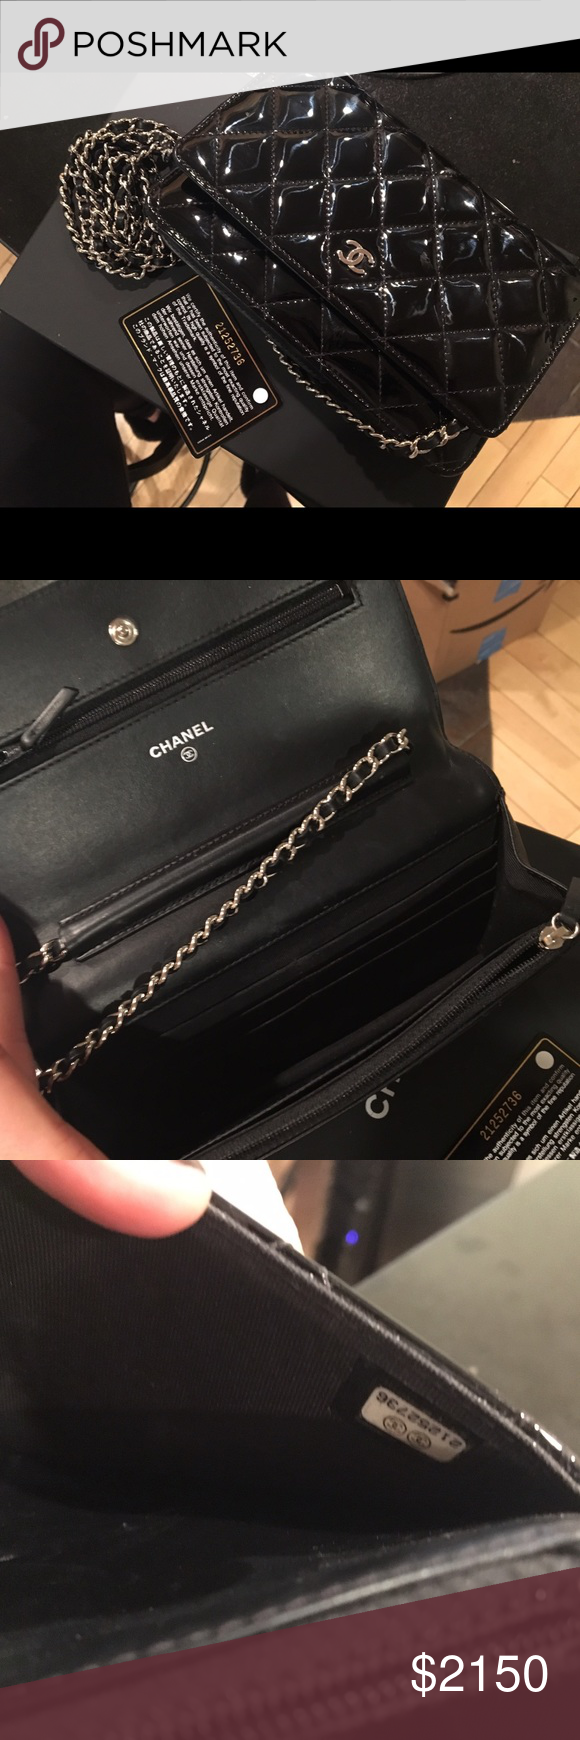 0909d4d1a915fe AUTHENTIC Black Chanel WOC Black Patent Lightly used AUTHENTIC Chanel WOC ( wallet on chain) in black patent leather with silver hardware.